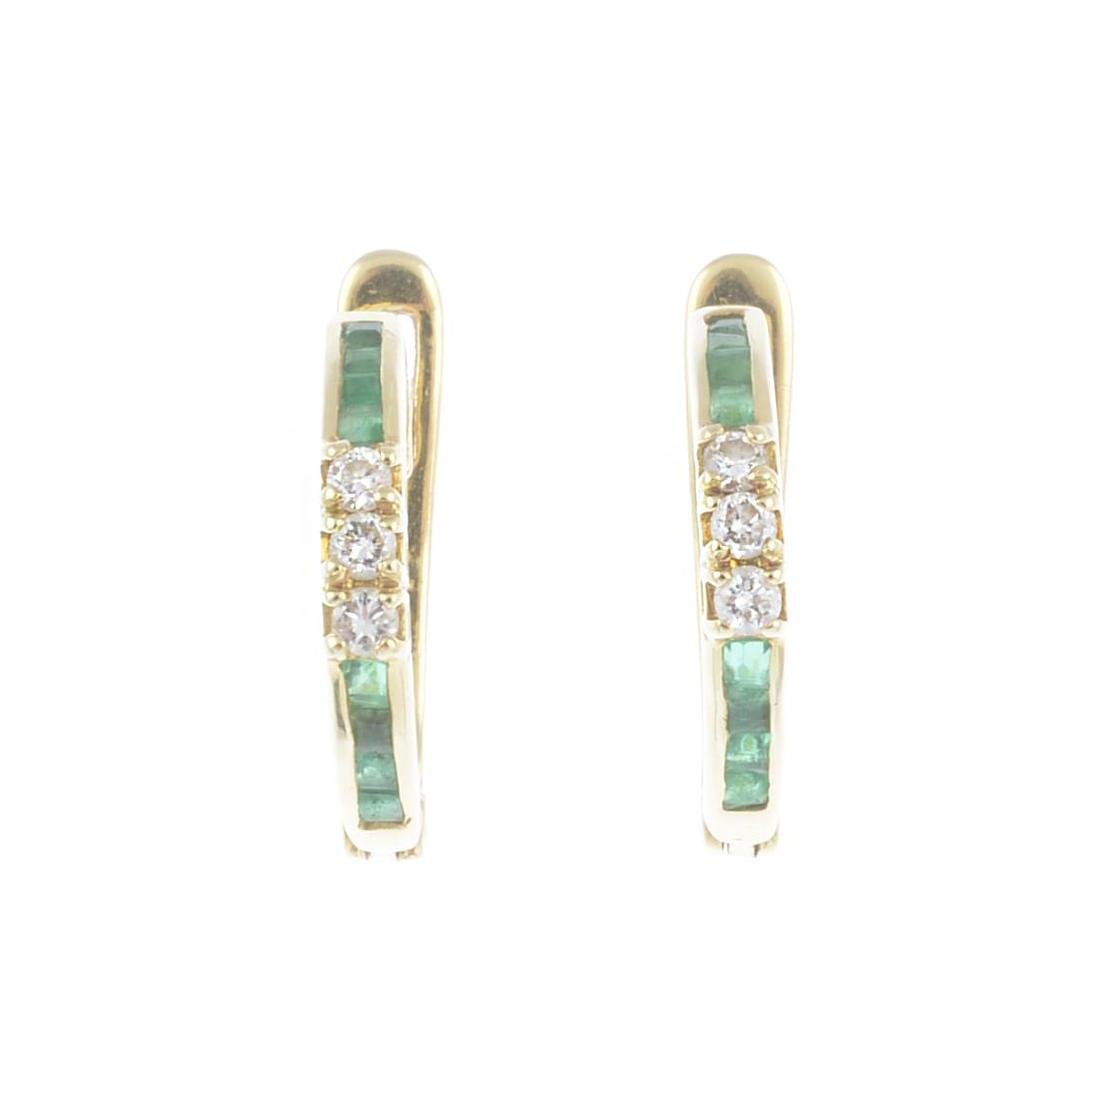 A pair of emerald and diamond earrings. Each designed